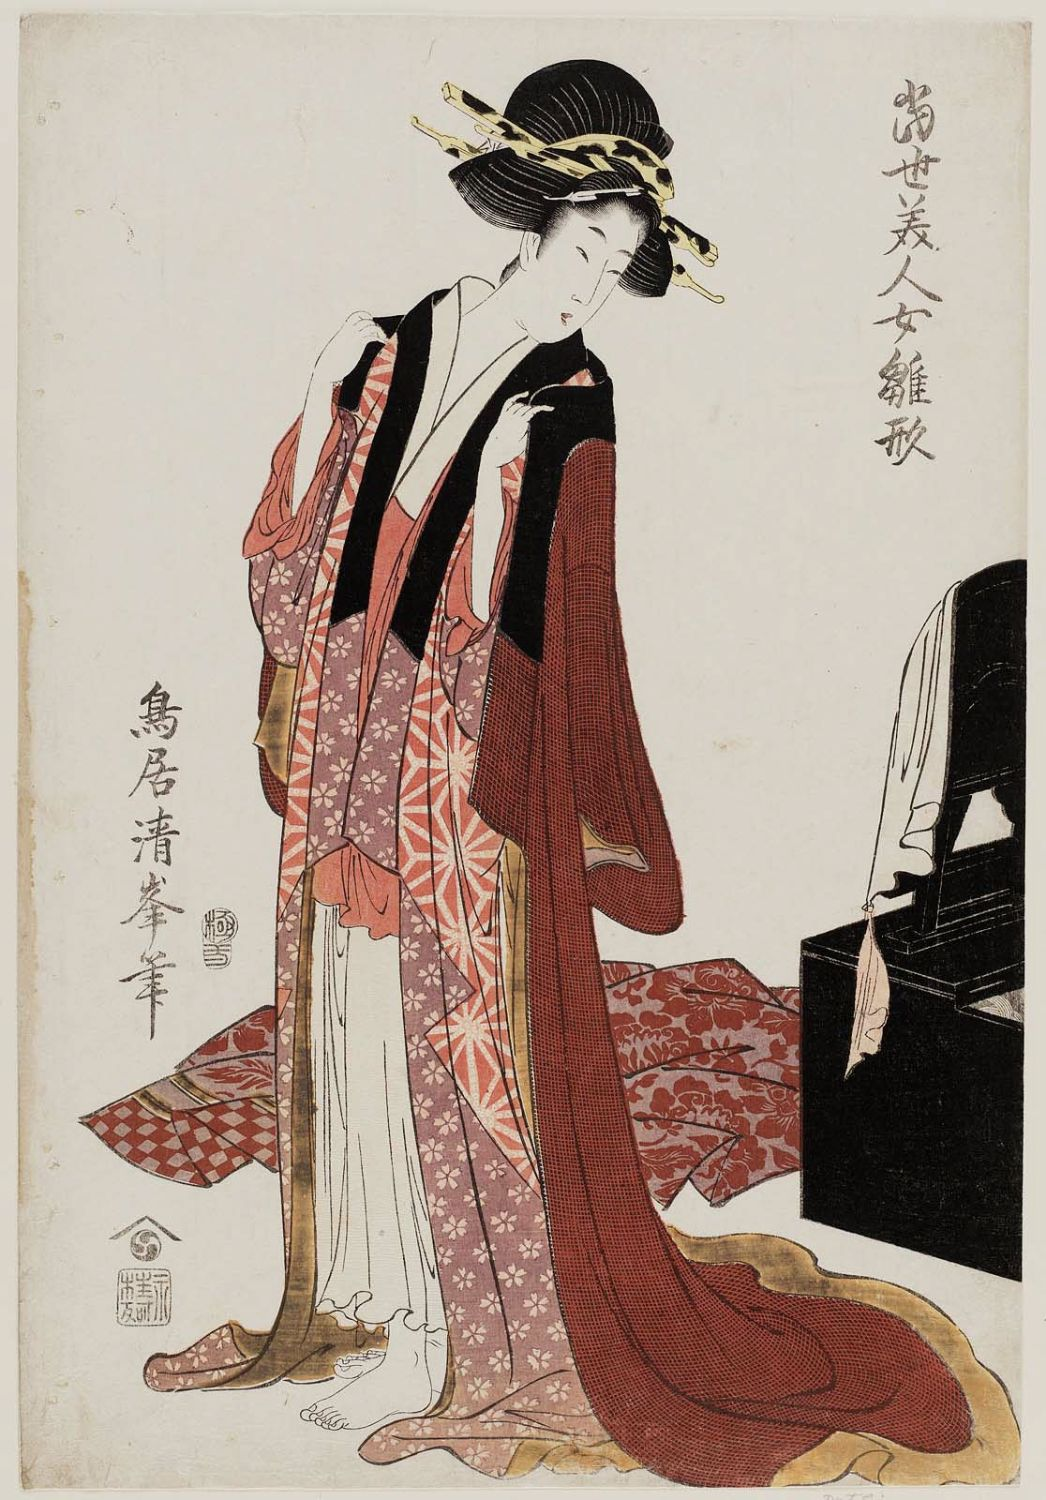 Torii Kiyomine: Woman Changing Clothes, from the series Feminine